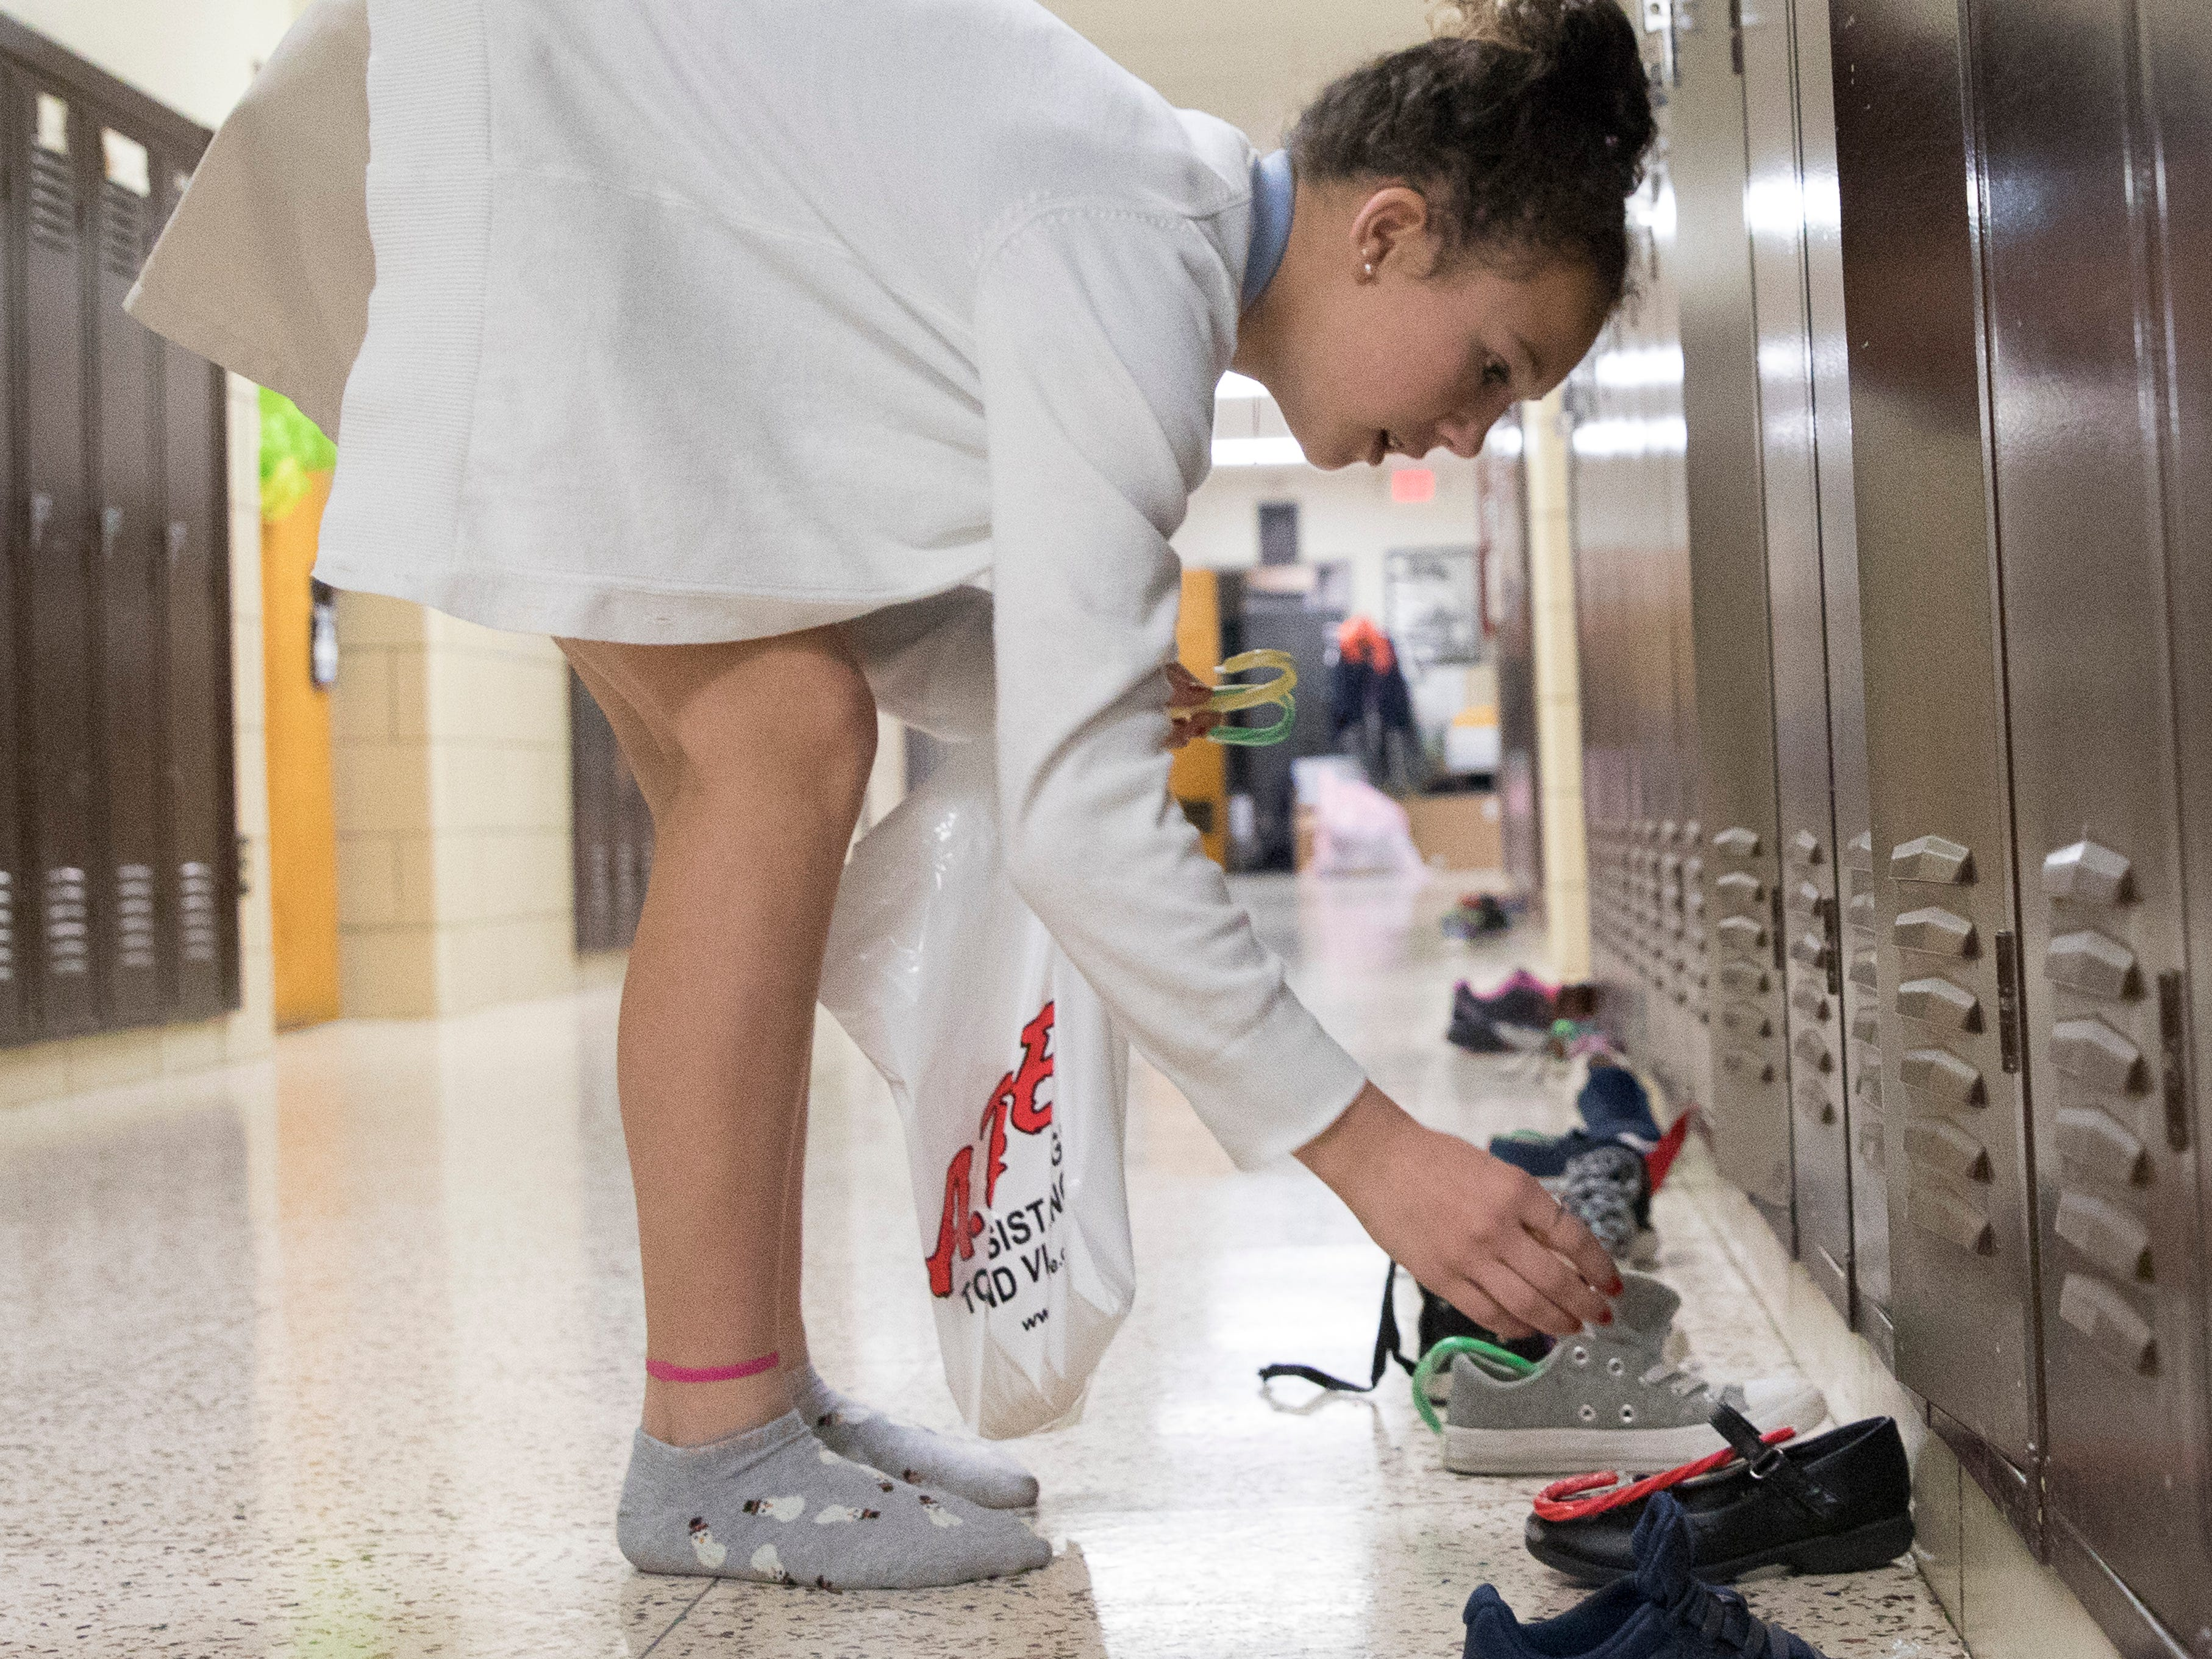 Ella Mikus helps St. Nicholas put candy canes inside the children's shoes at Bishop Flaget Middle School the morning of December 6, 2018. Today, St. Nicholas is recognized as the originator of Santa Claus and was known for his generosity and love of children by using his inheritance to help the needy, sick, and suffering.